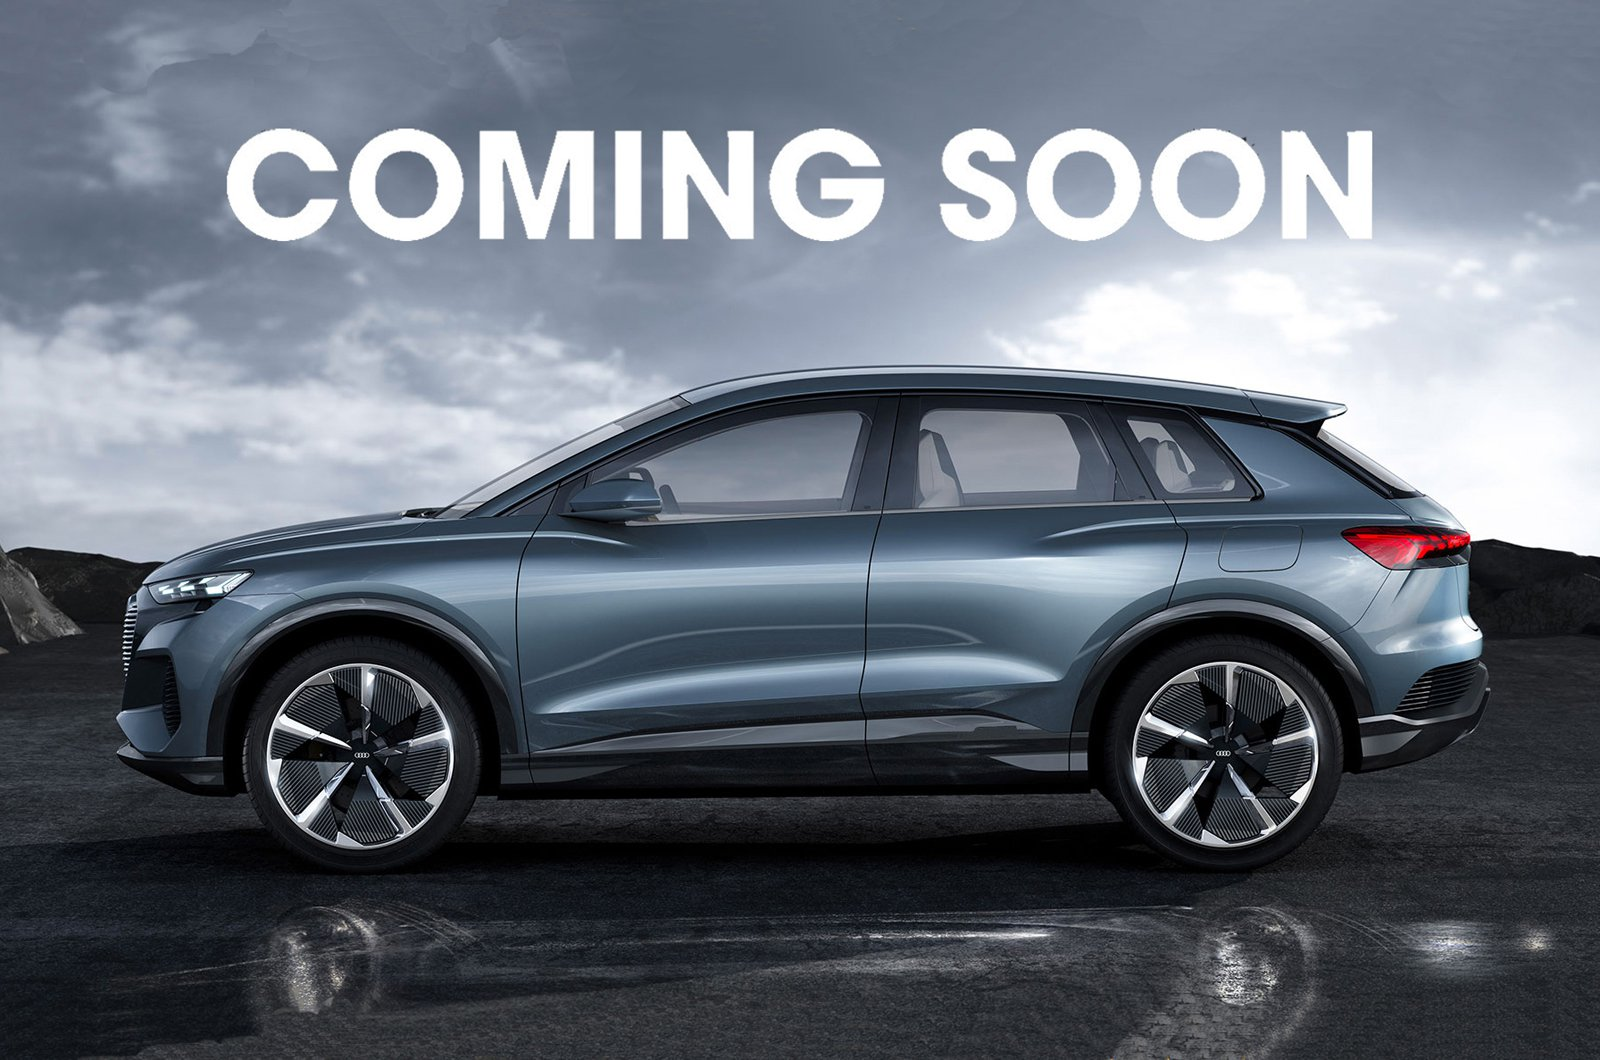 Coming soon - Audi Q4 E-tron